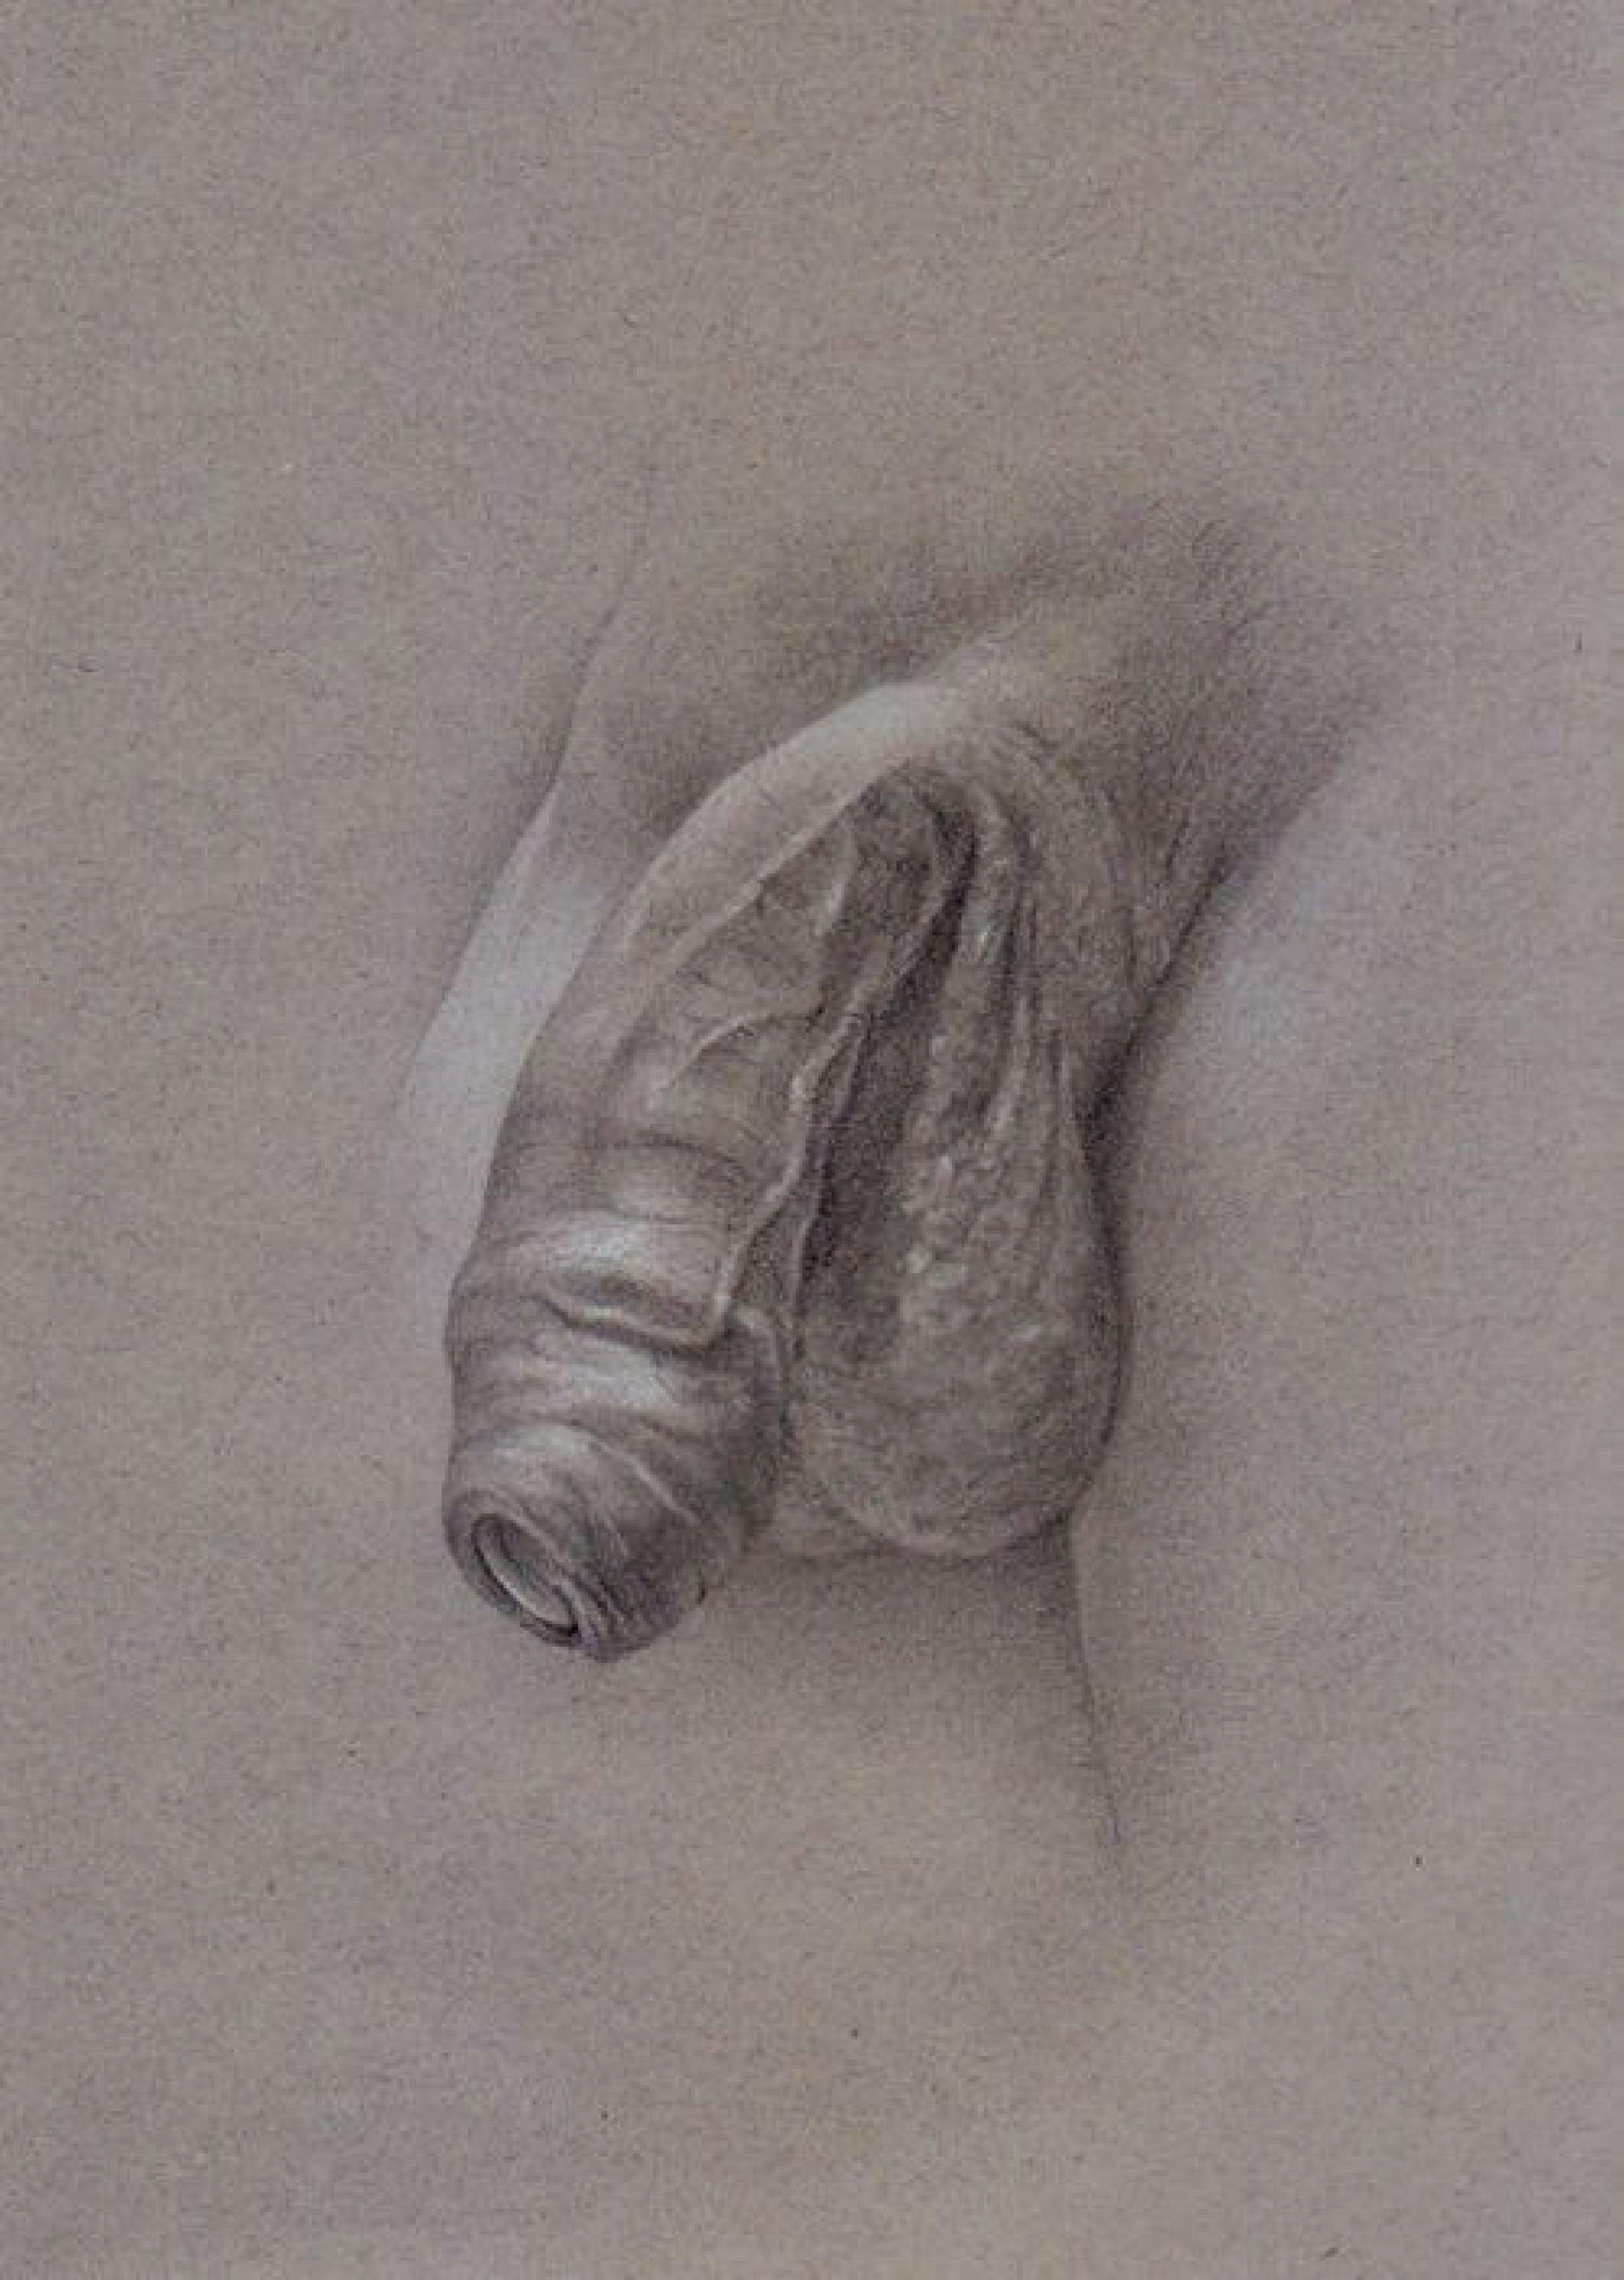 Tim patch and his magnificently artistic penis